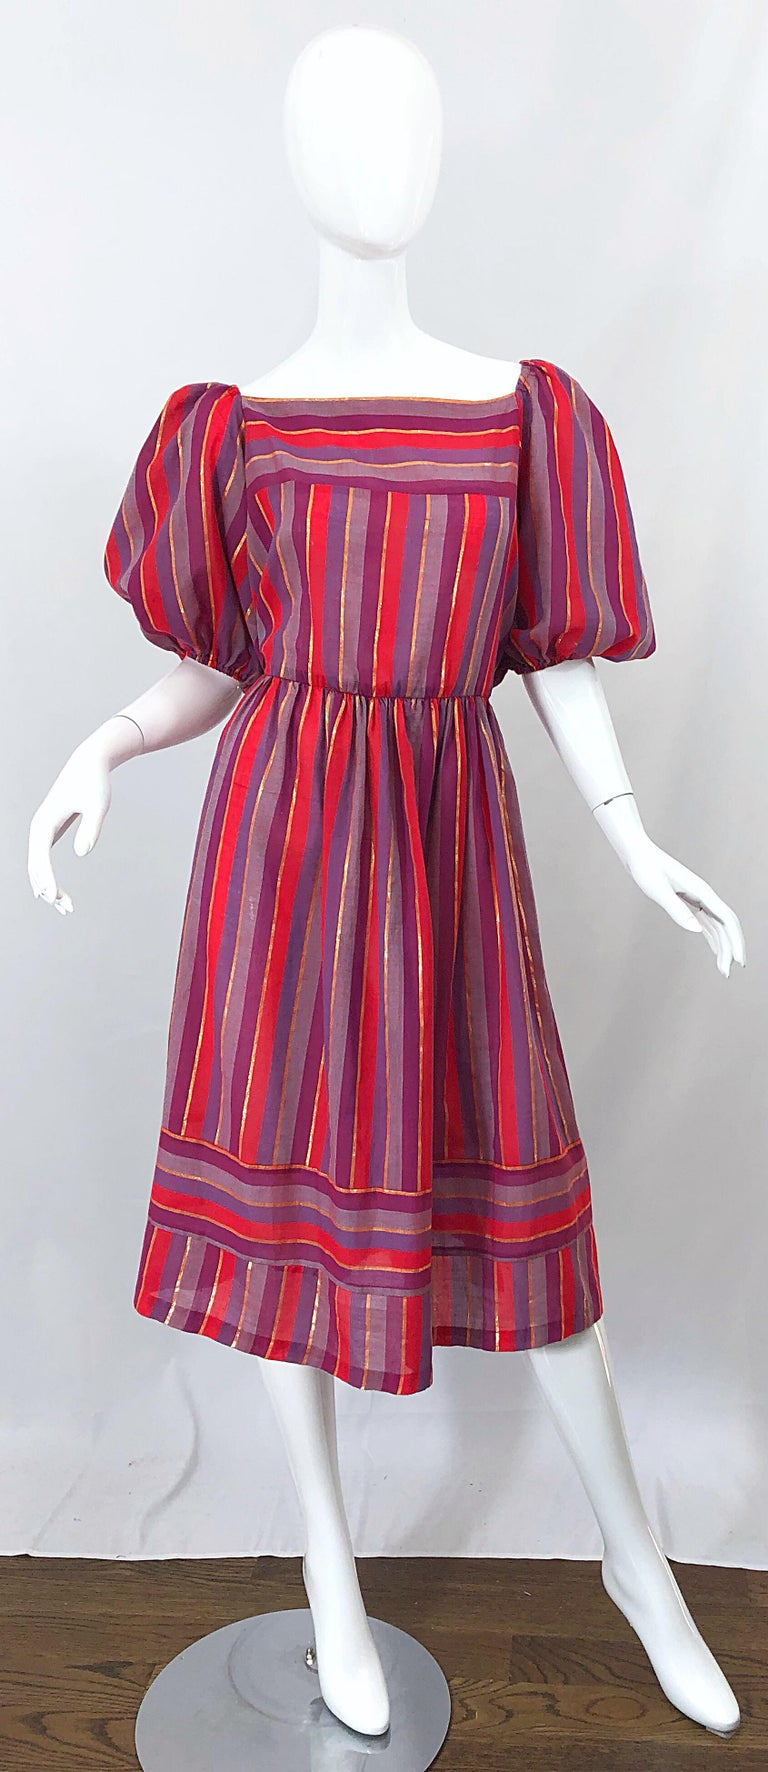 Boho chic 1970s red, purple lilac and metallic gold vertically striped dress! Features chic short puff sleeves. Elastic waistband makes this beauty easy to wear and comfortable. Lightweight cotton voile blend is perfect for any time of year. Hidden